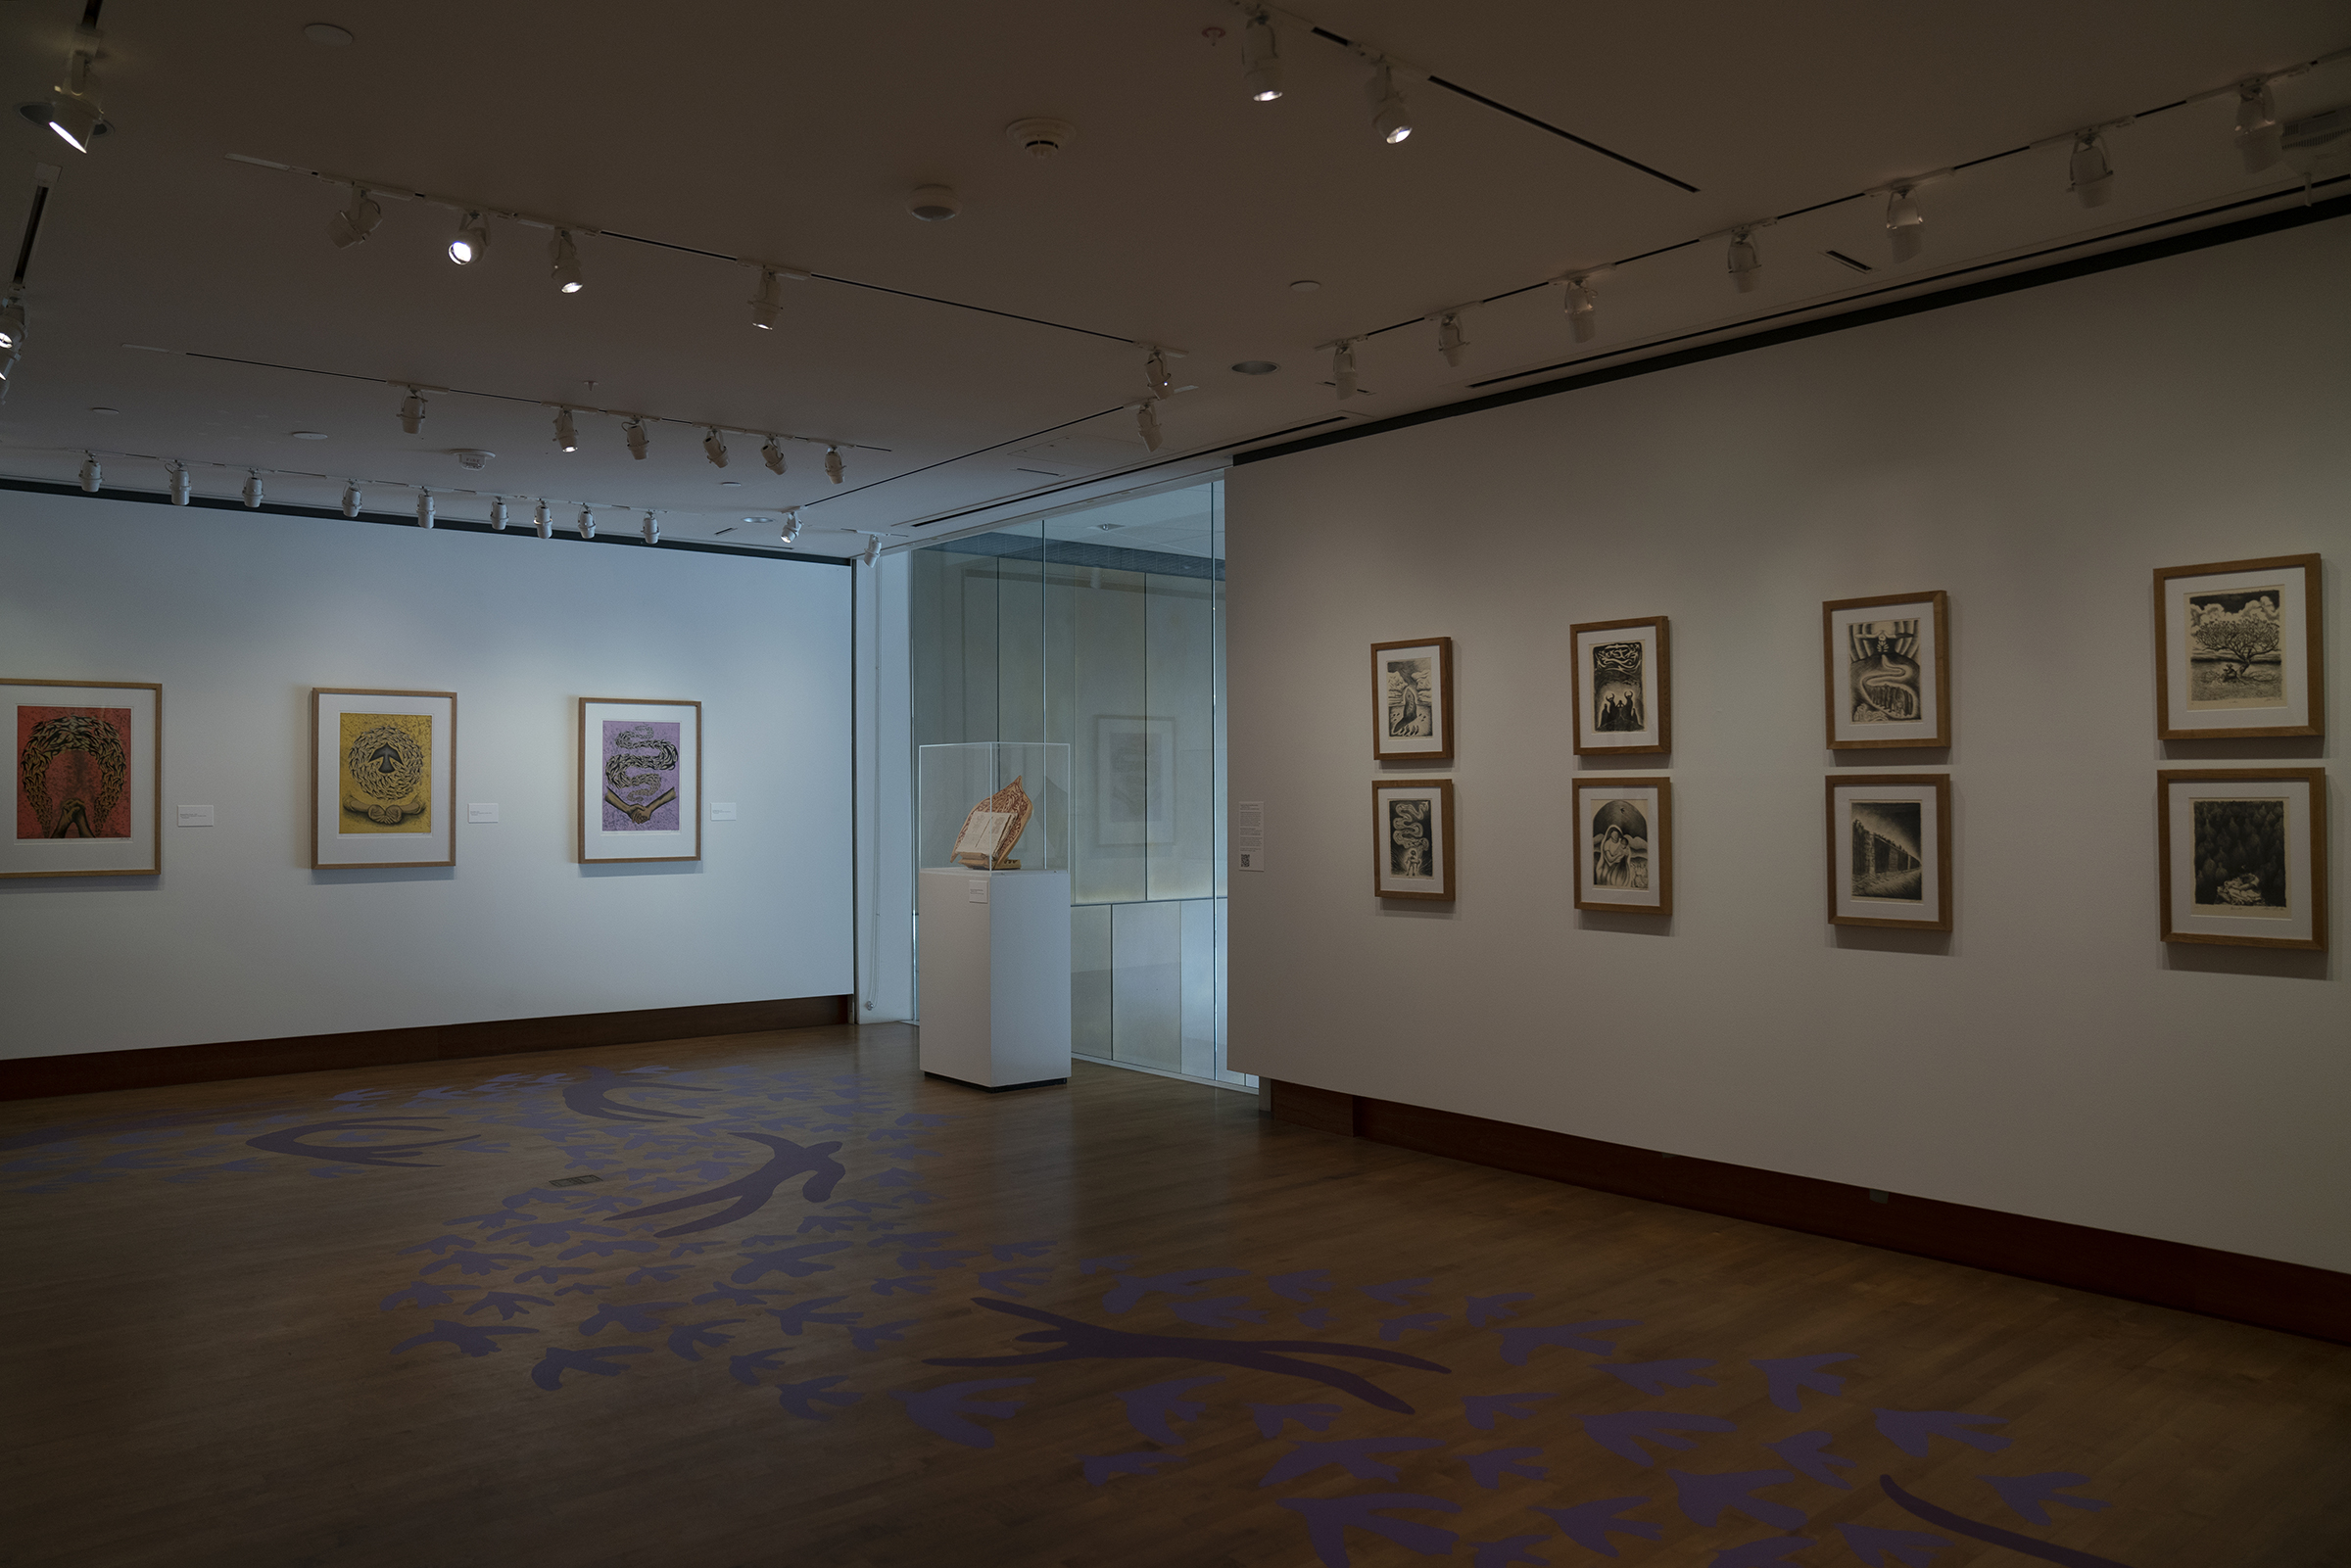 Installation view of Untethered: Our Journey Beyond Borders by Roberto Torres Mata at the Chazen Museum of Art, University of Wisconsin-Madison.